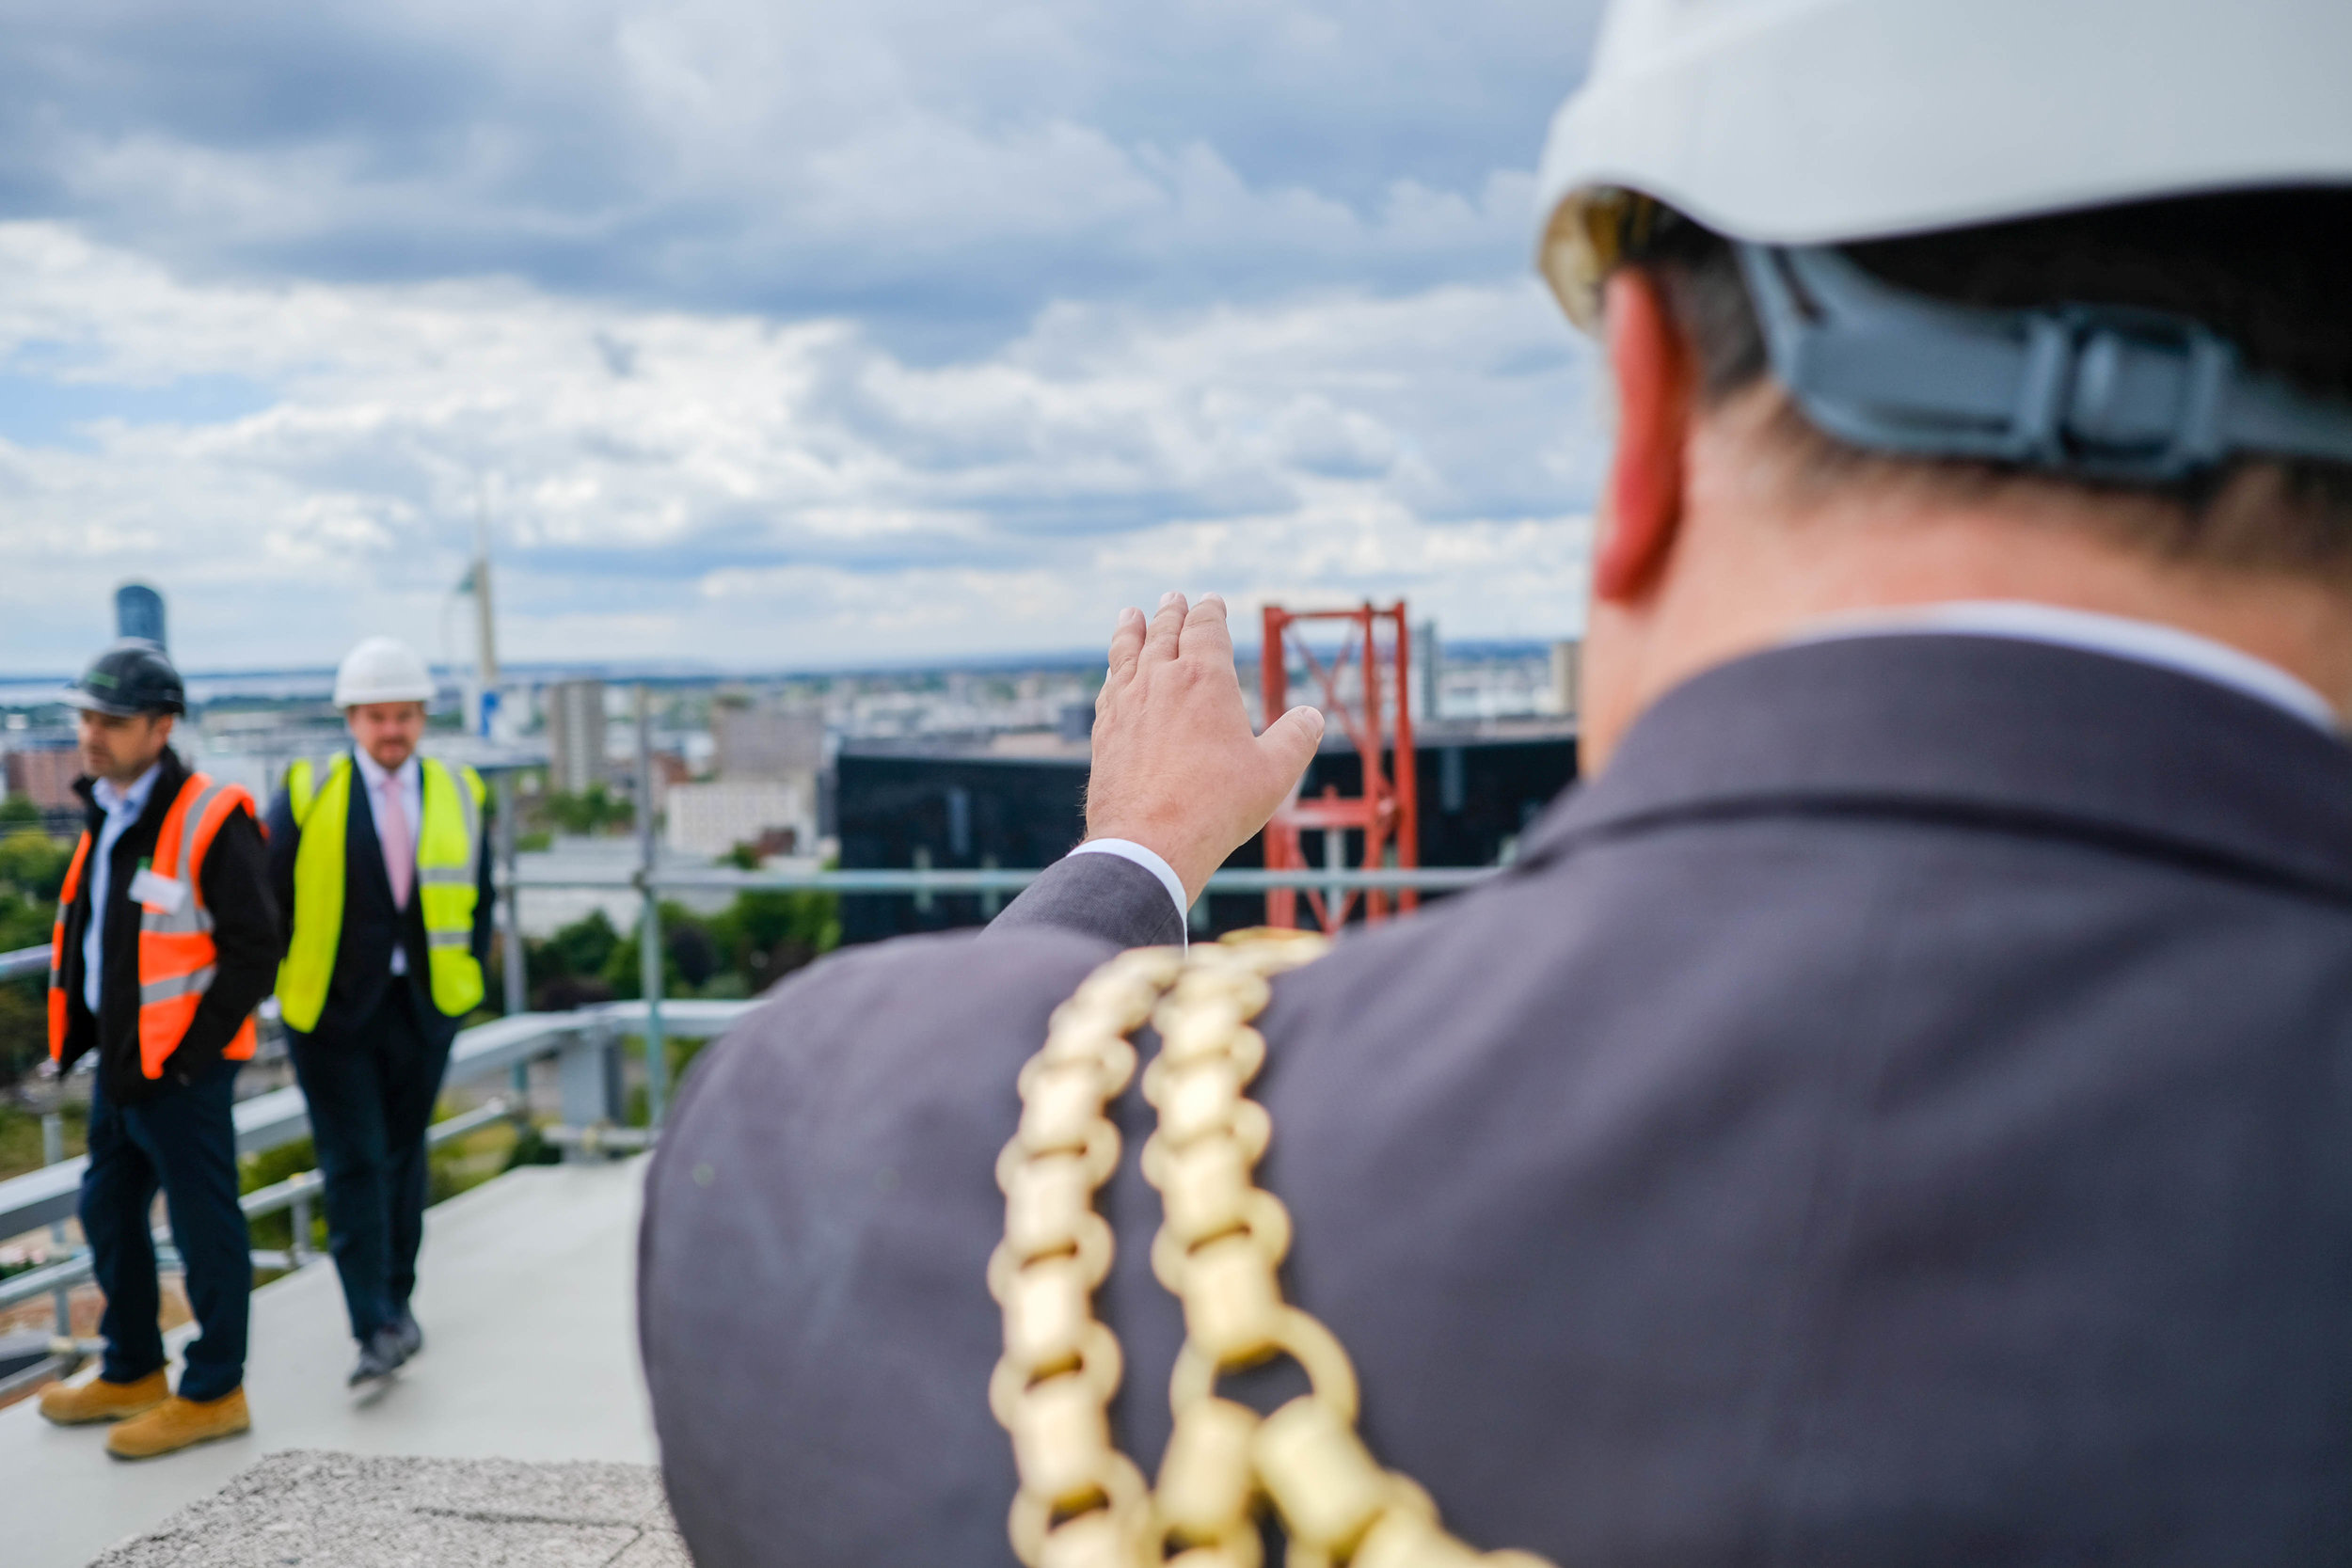 Stanhope House Topping Out 28.05.19 - Solent Sky Services--37.JPG